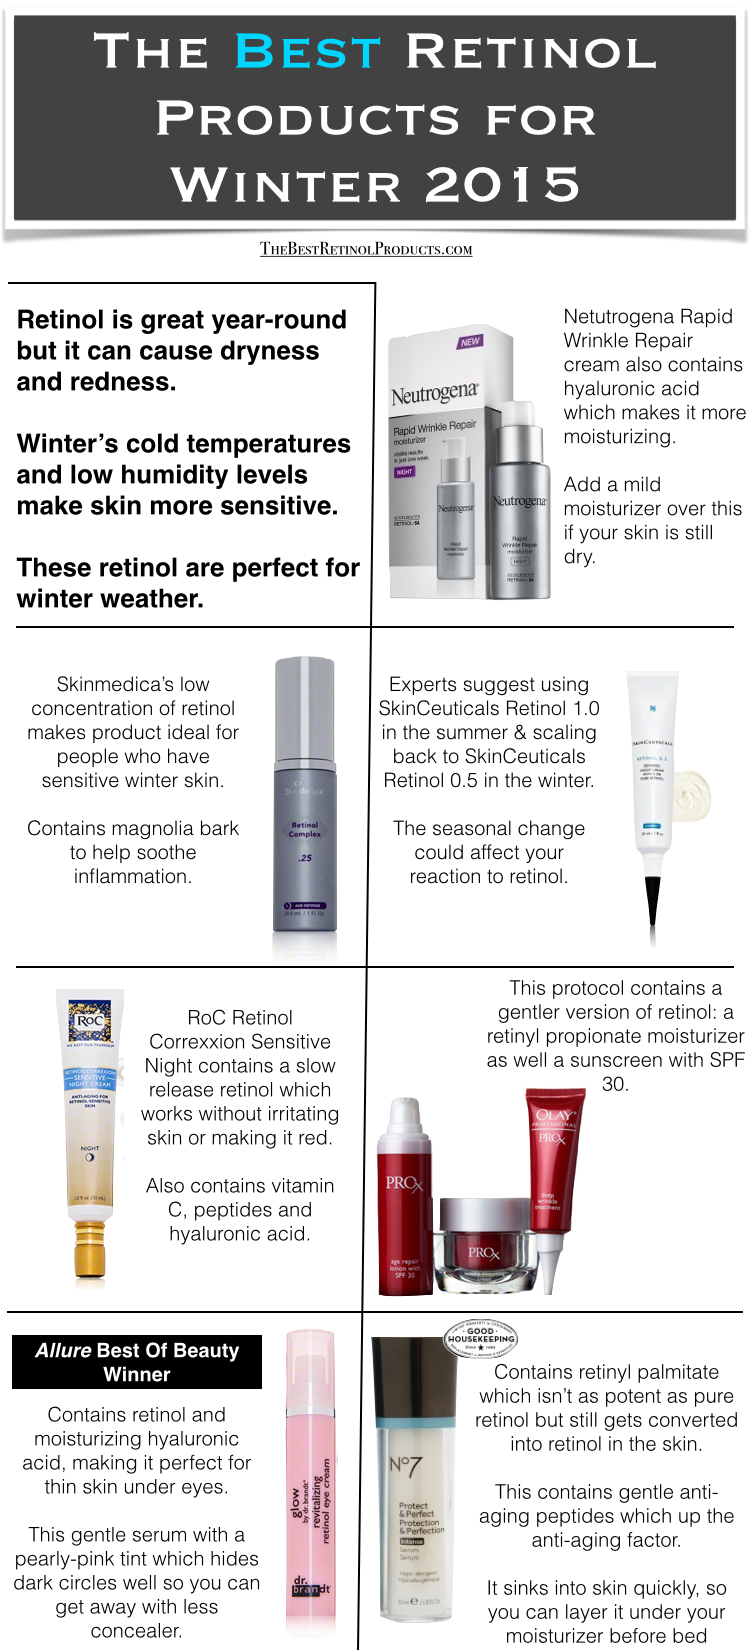 The Best Retinol Products The 7 Best Retinol Products For Winter Natural Skin Care Routine Skin Care Skin Tags On Face